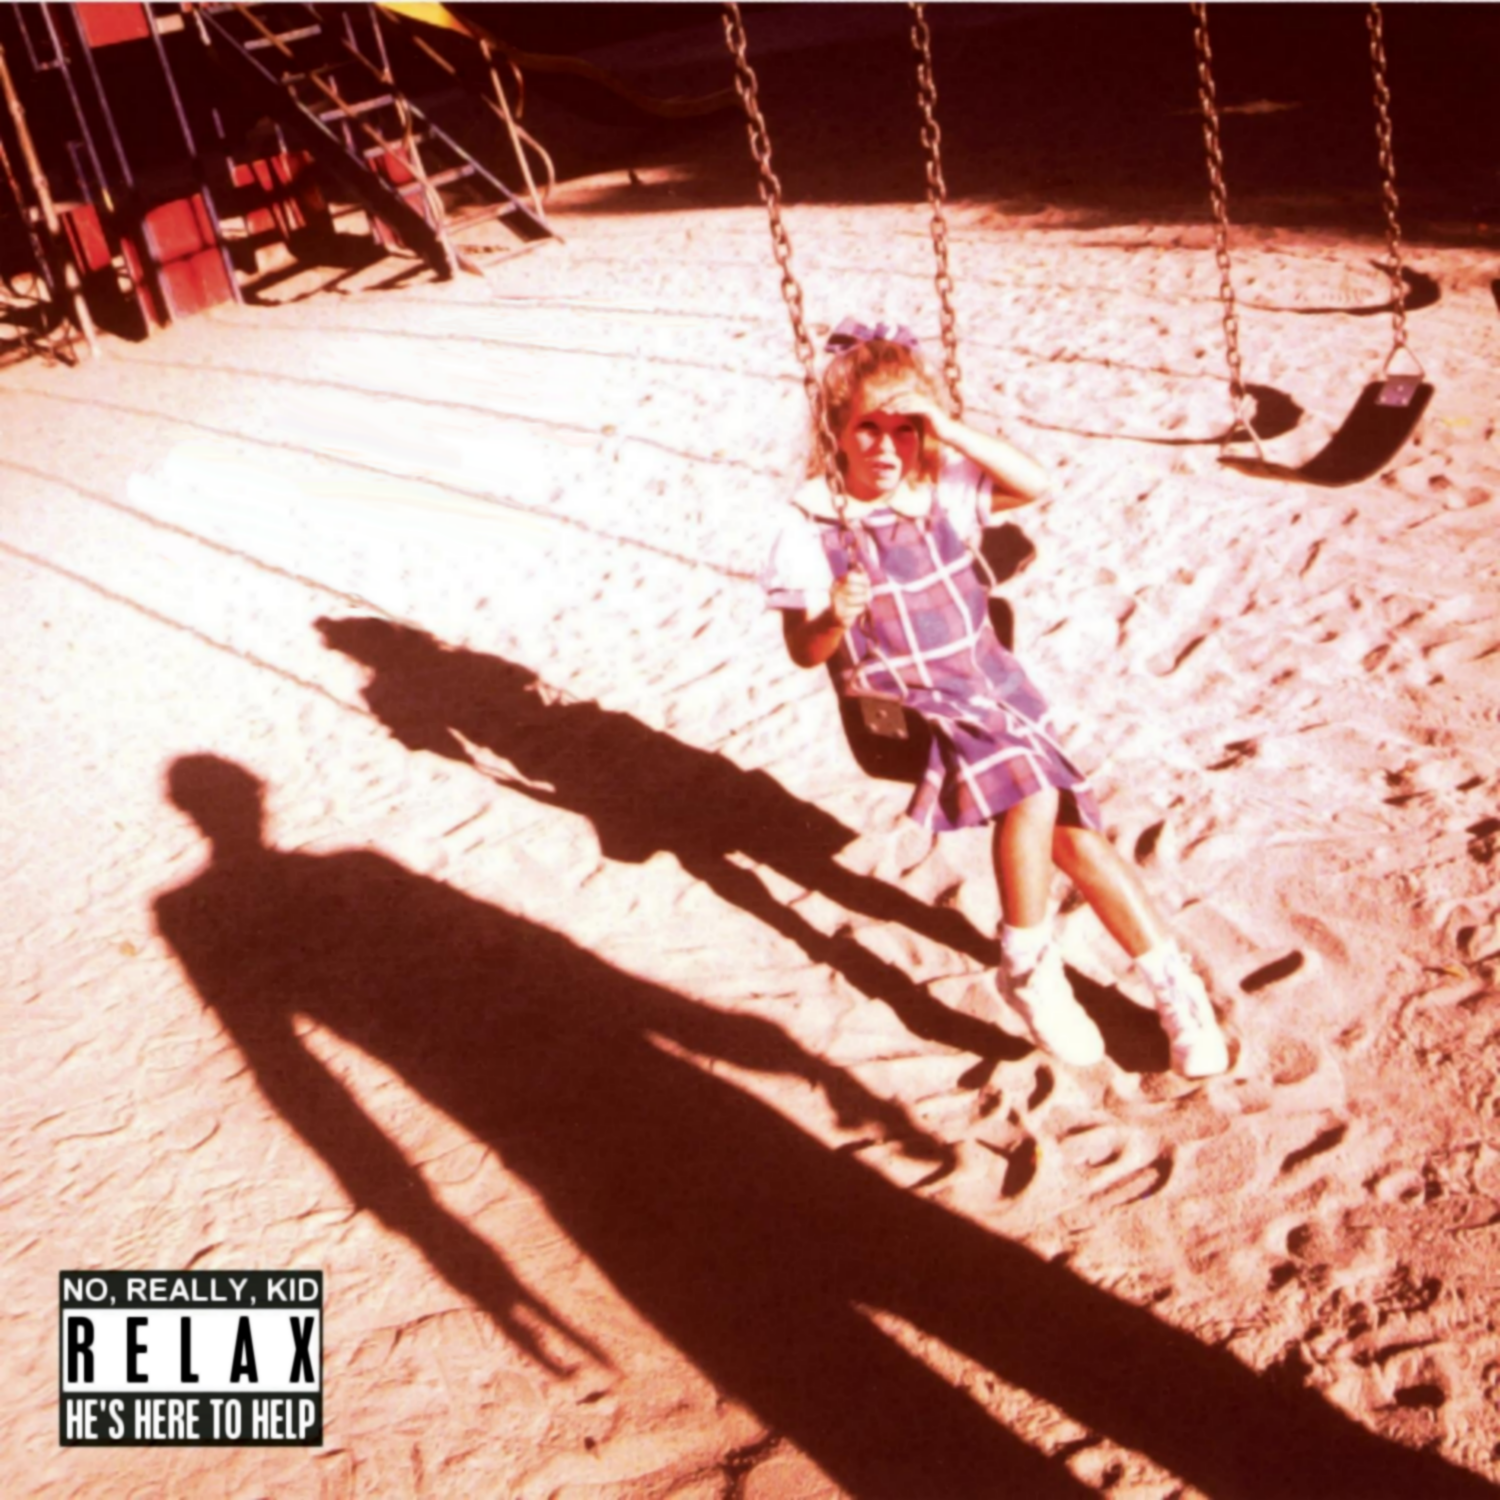 Album cover parody of Korn by Korn